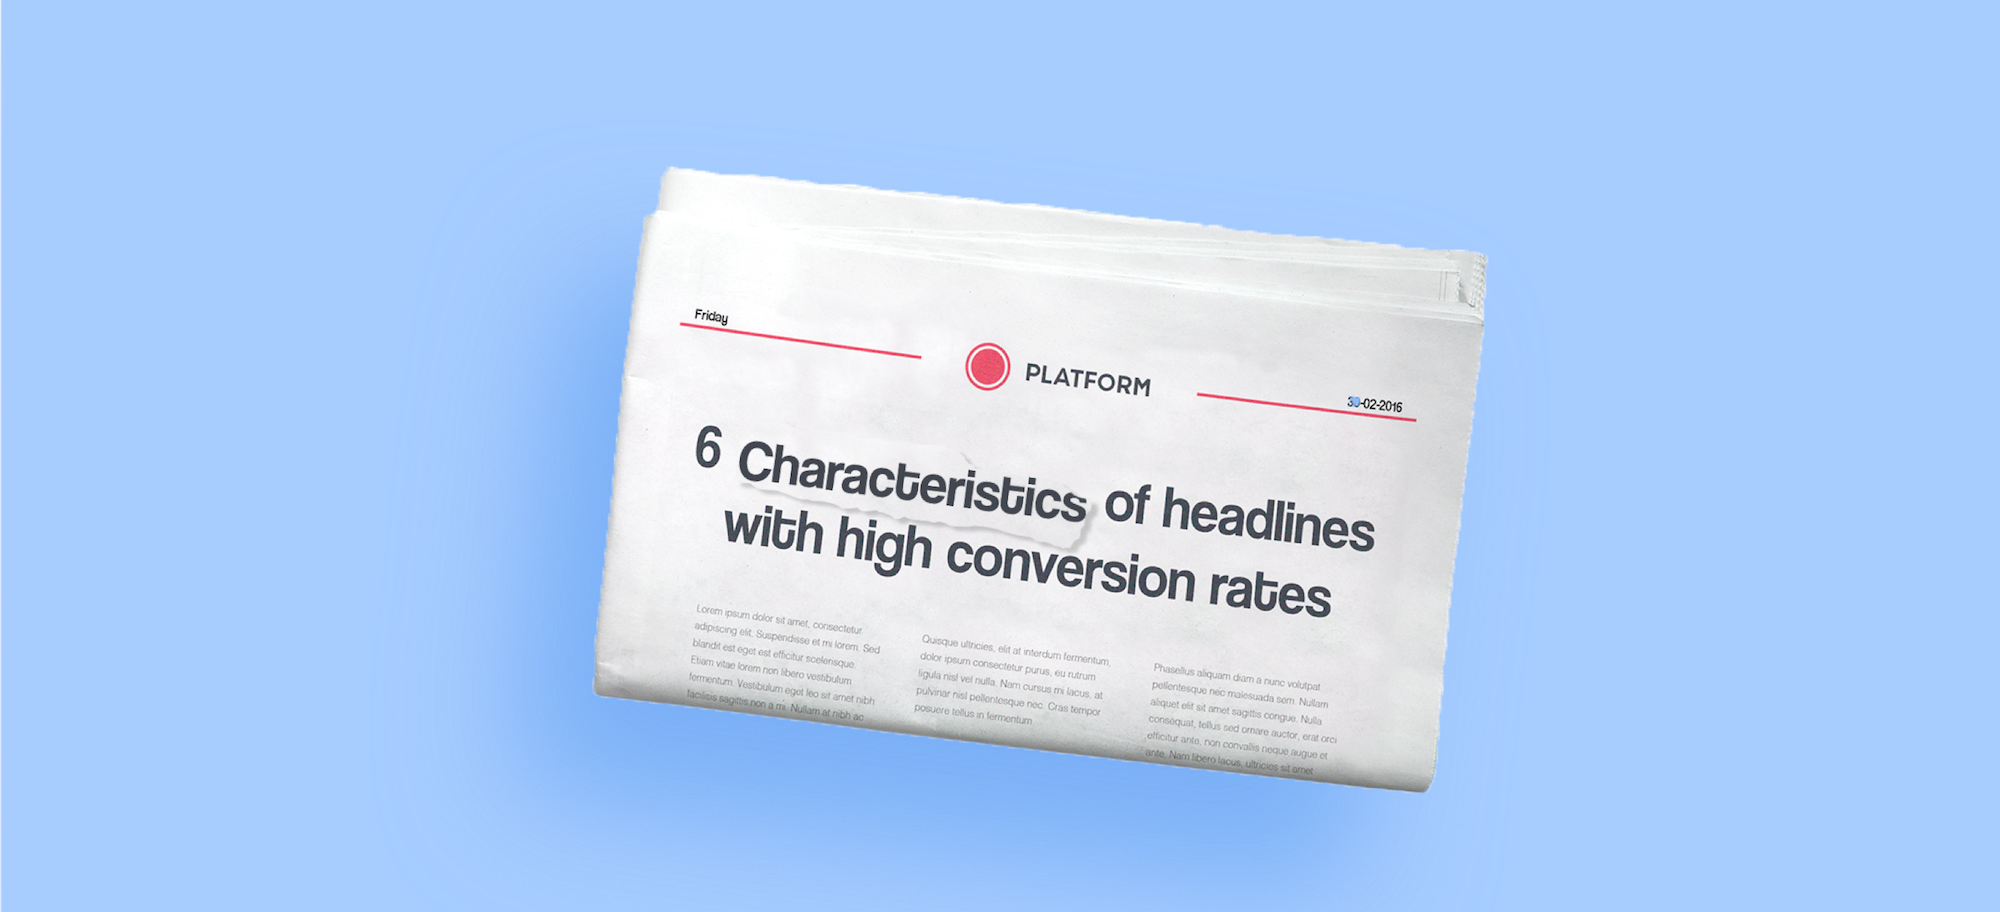 6-characteristics-of-headlines-with-high-conversion-rates-img